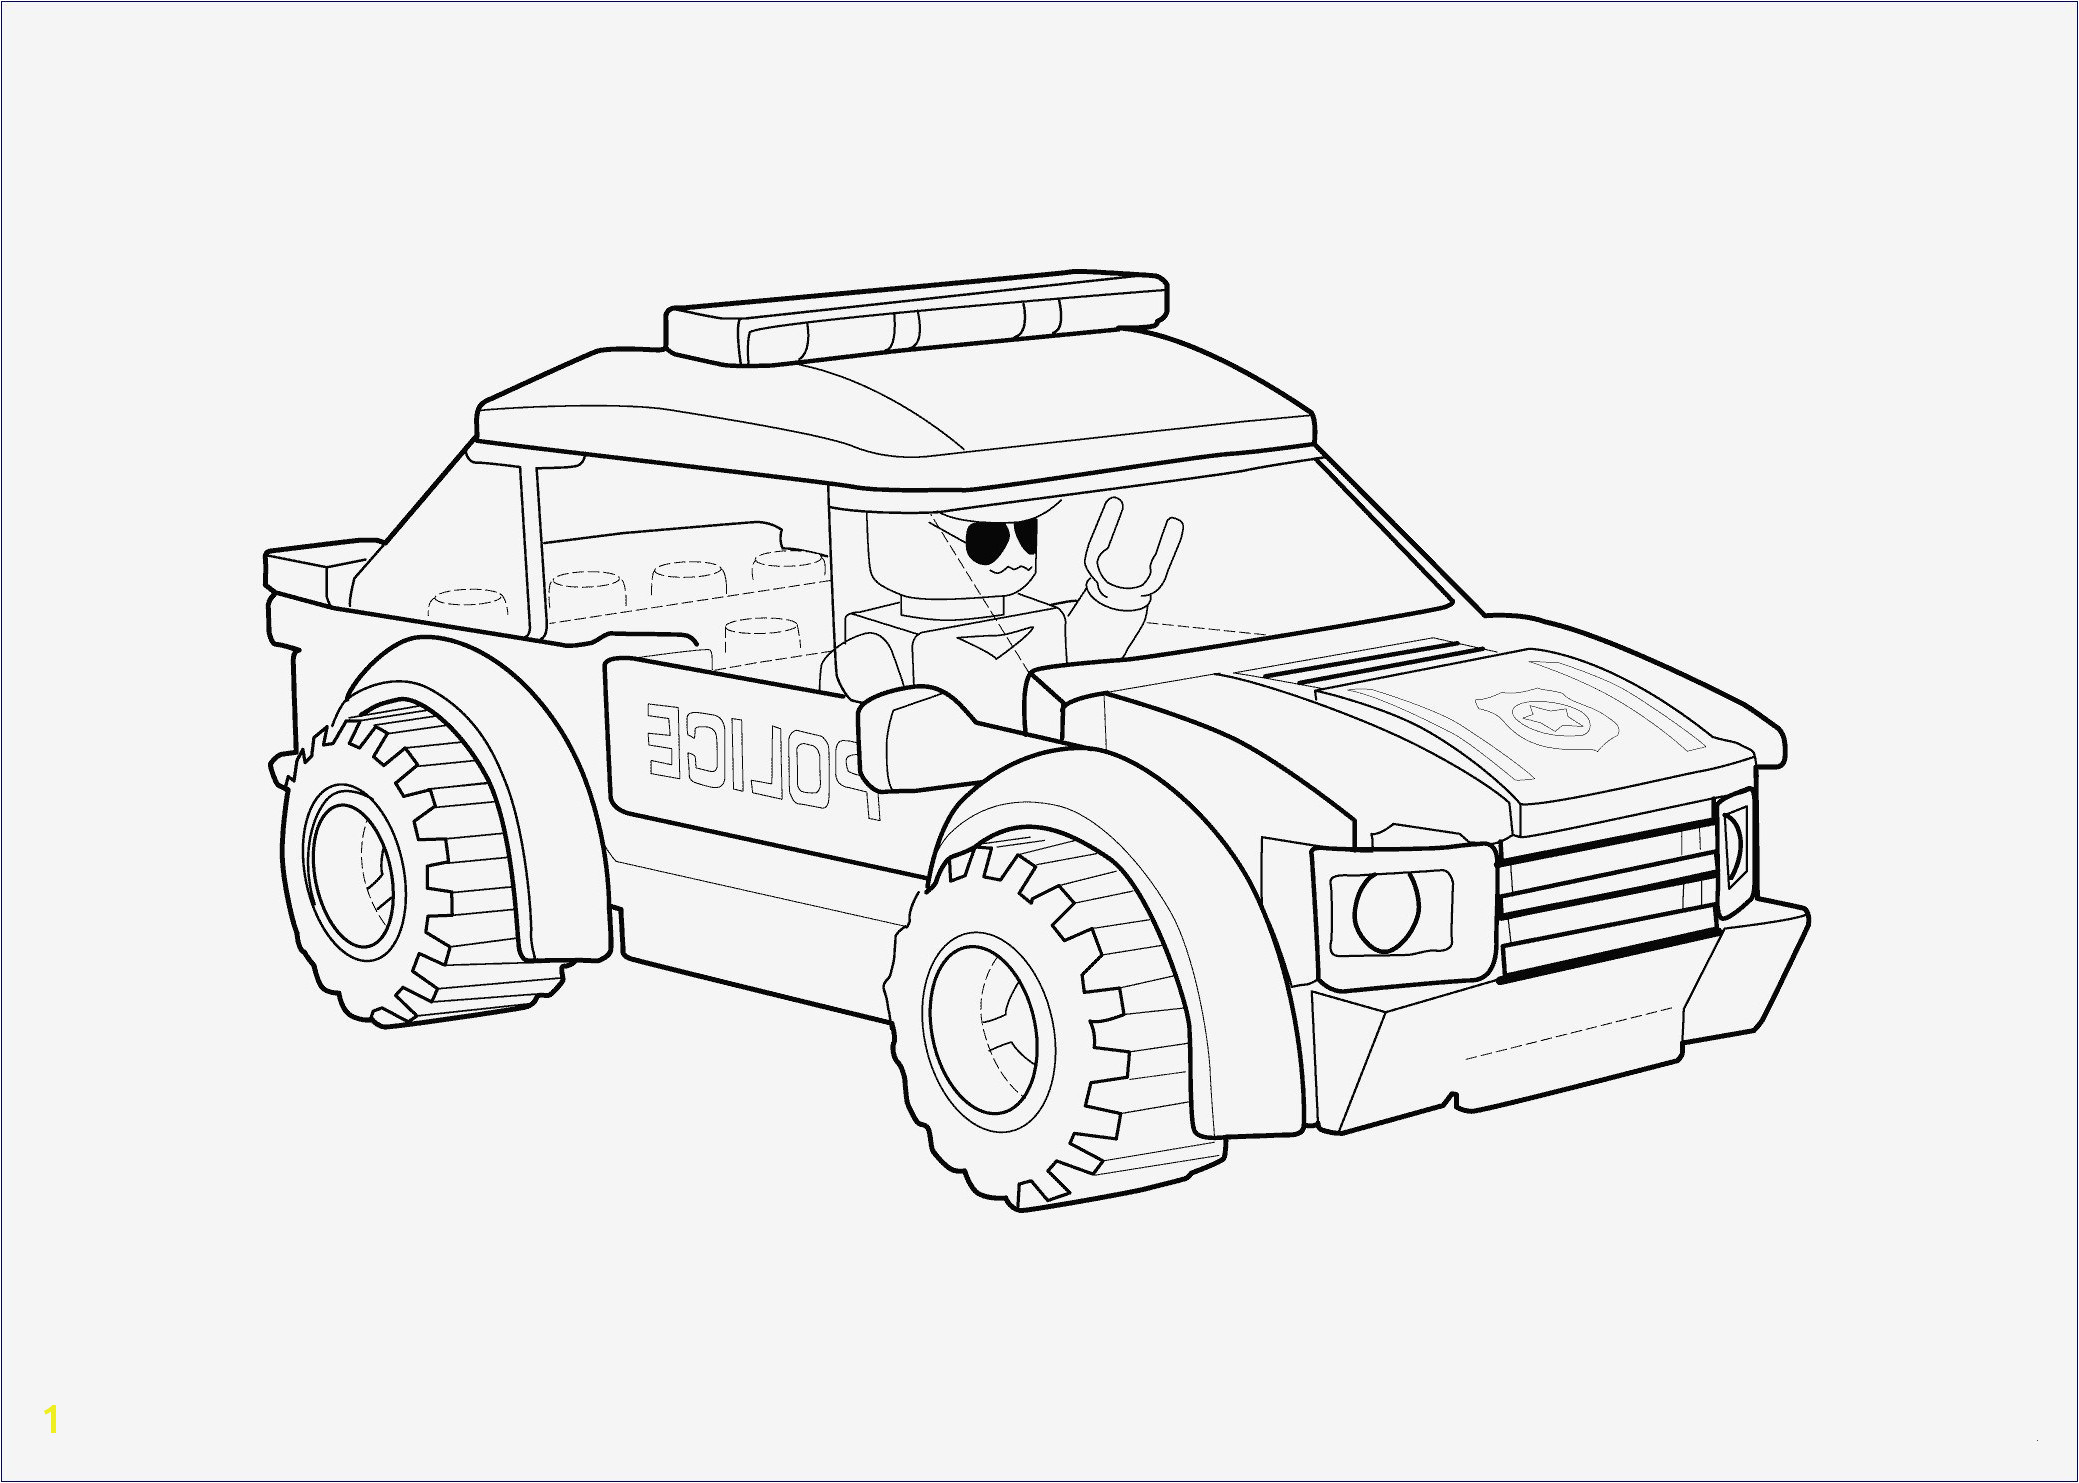 14 Fresh Lego Space Police Coloring Pages graph